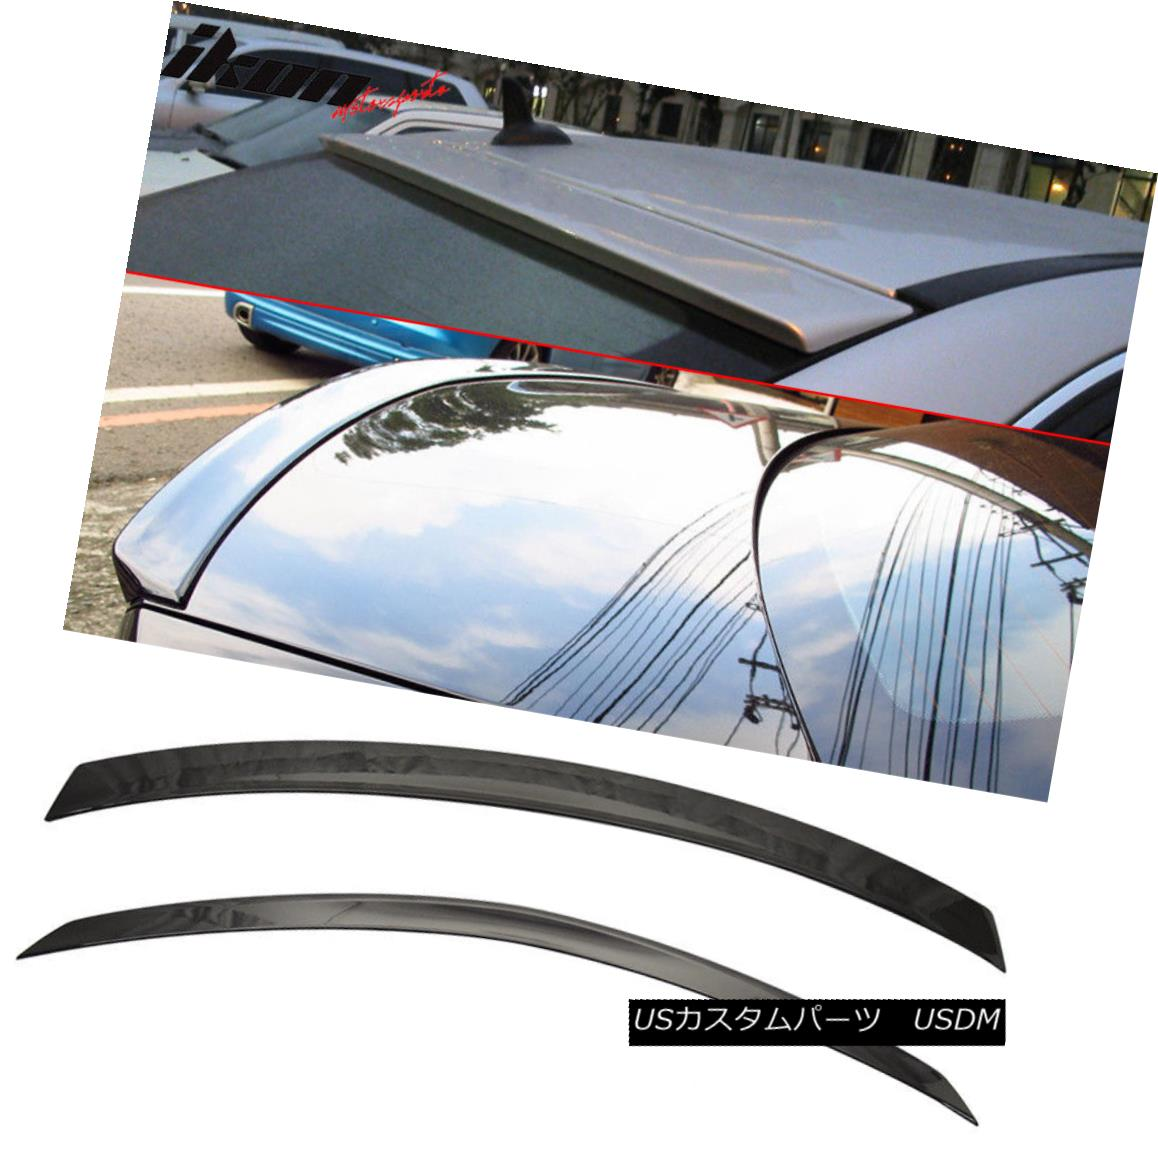 エアロパーツ Fits 08-14 Benz W204 Sedan AMG Trunk & OE Roof Wing Painted #197 Obsidian Black フィット08-14ベンツW204セダンAMGトランク& OEルーフウイング#197 Obsidian Black